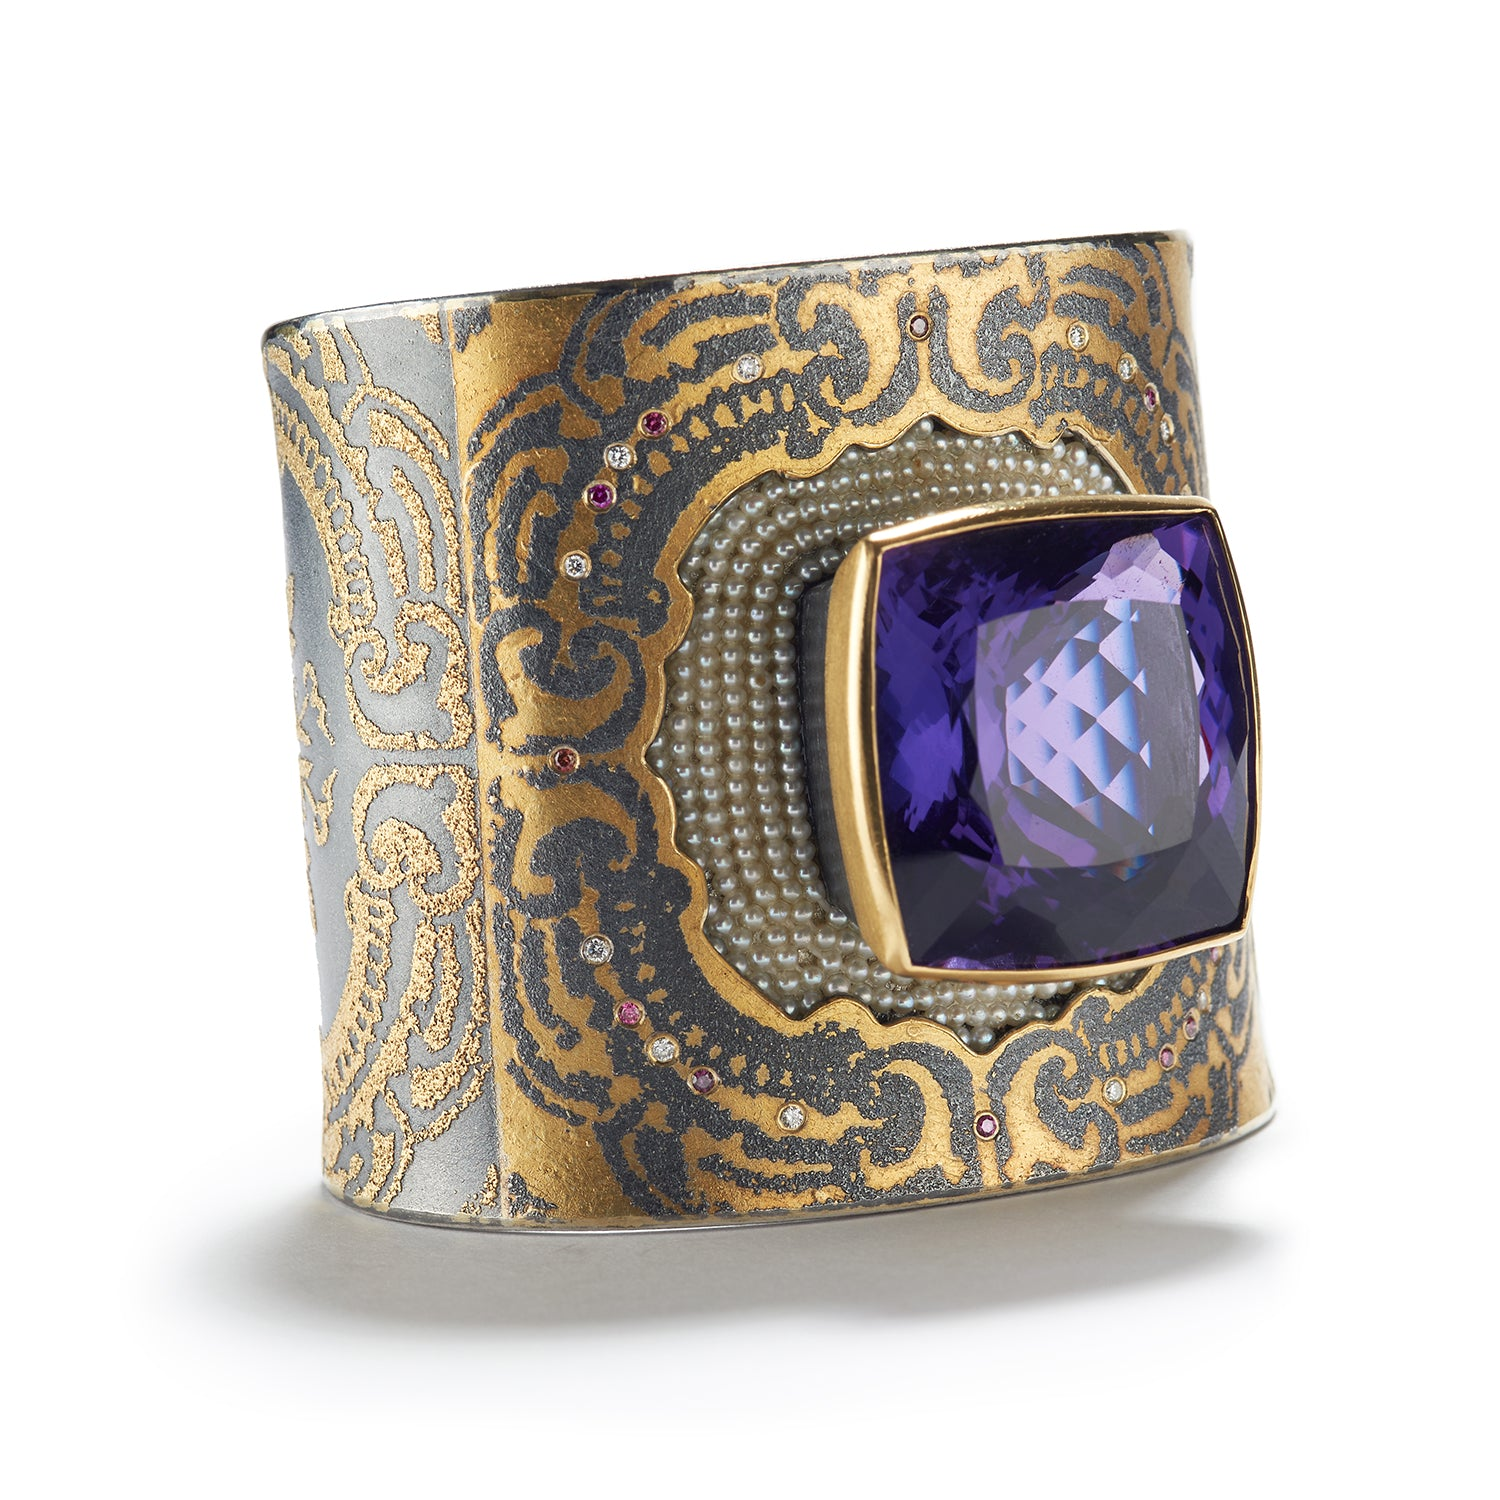 Captivating Brilliance Cuff Bracelet